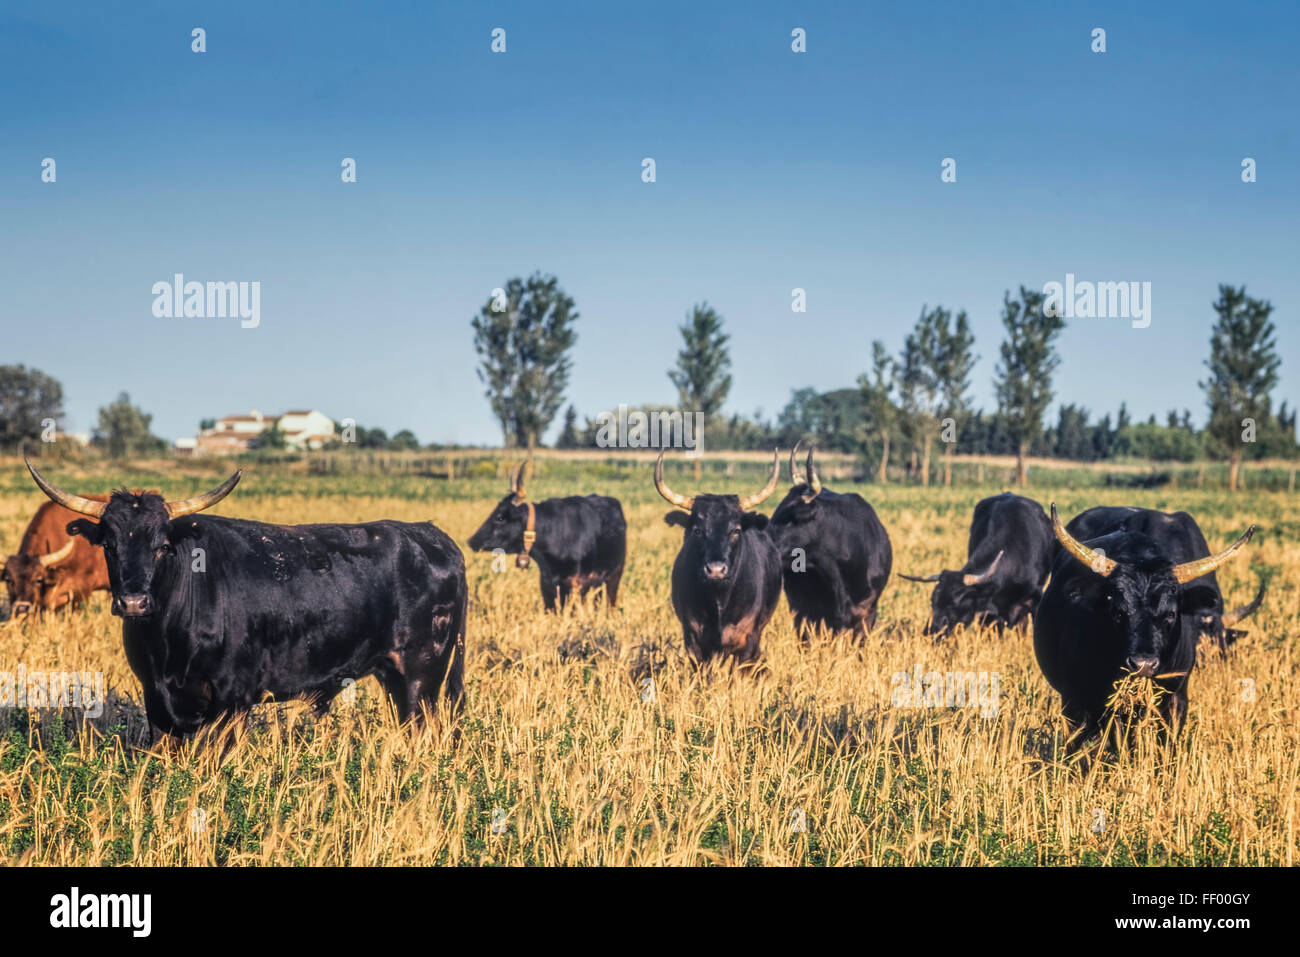 Bulls in Camargue, France, Europe - Stock Image